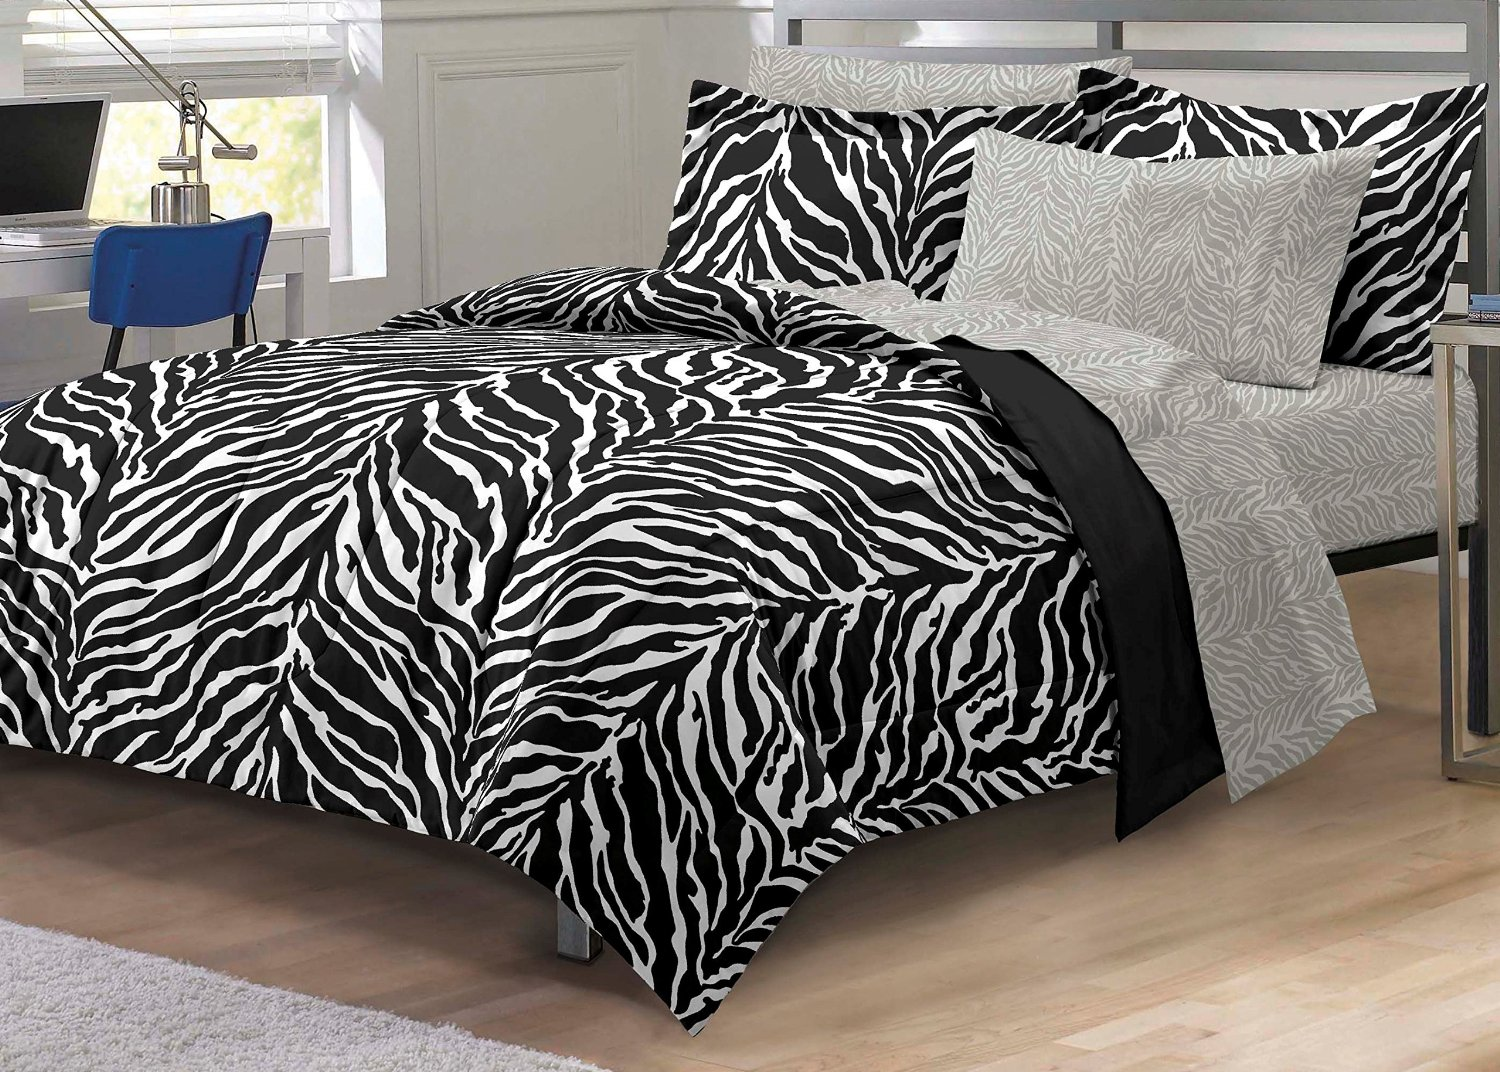 Bed sets for teenage girls zebra - Under 50 Zebra Print Comforter Sheet Set For Tween Teen Girls